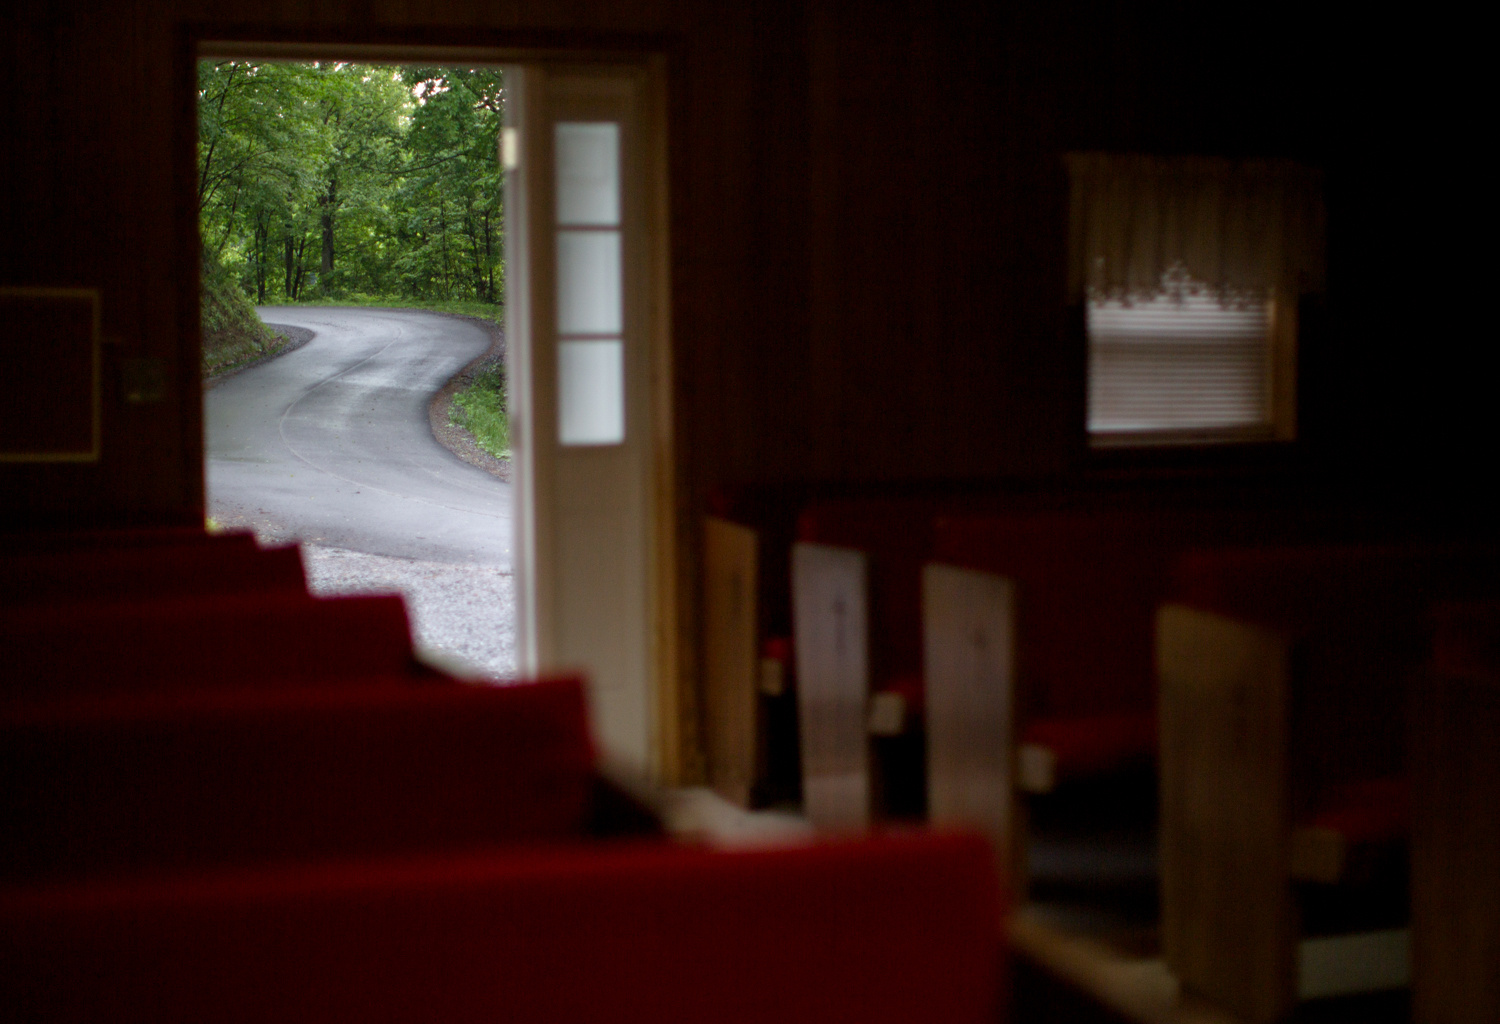 Lauren Pond . May 27, 2014. A winding road leads to the doorway of the Mountaintop Church of Jesus Our Lord, Savior, and Christ in Richlands, Tazewell County, Virginia.